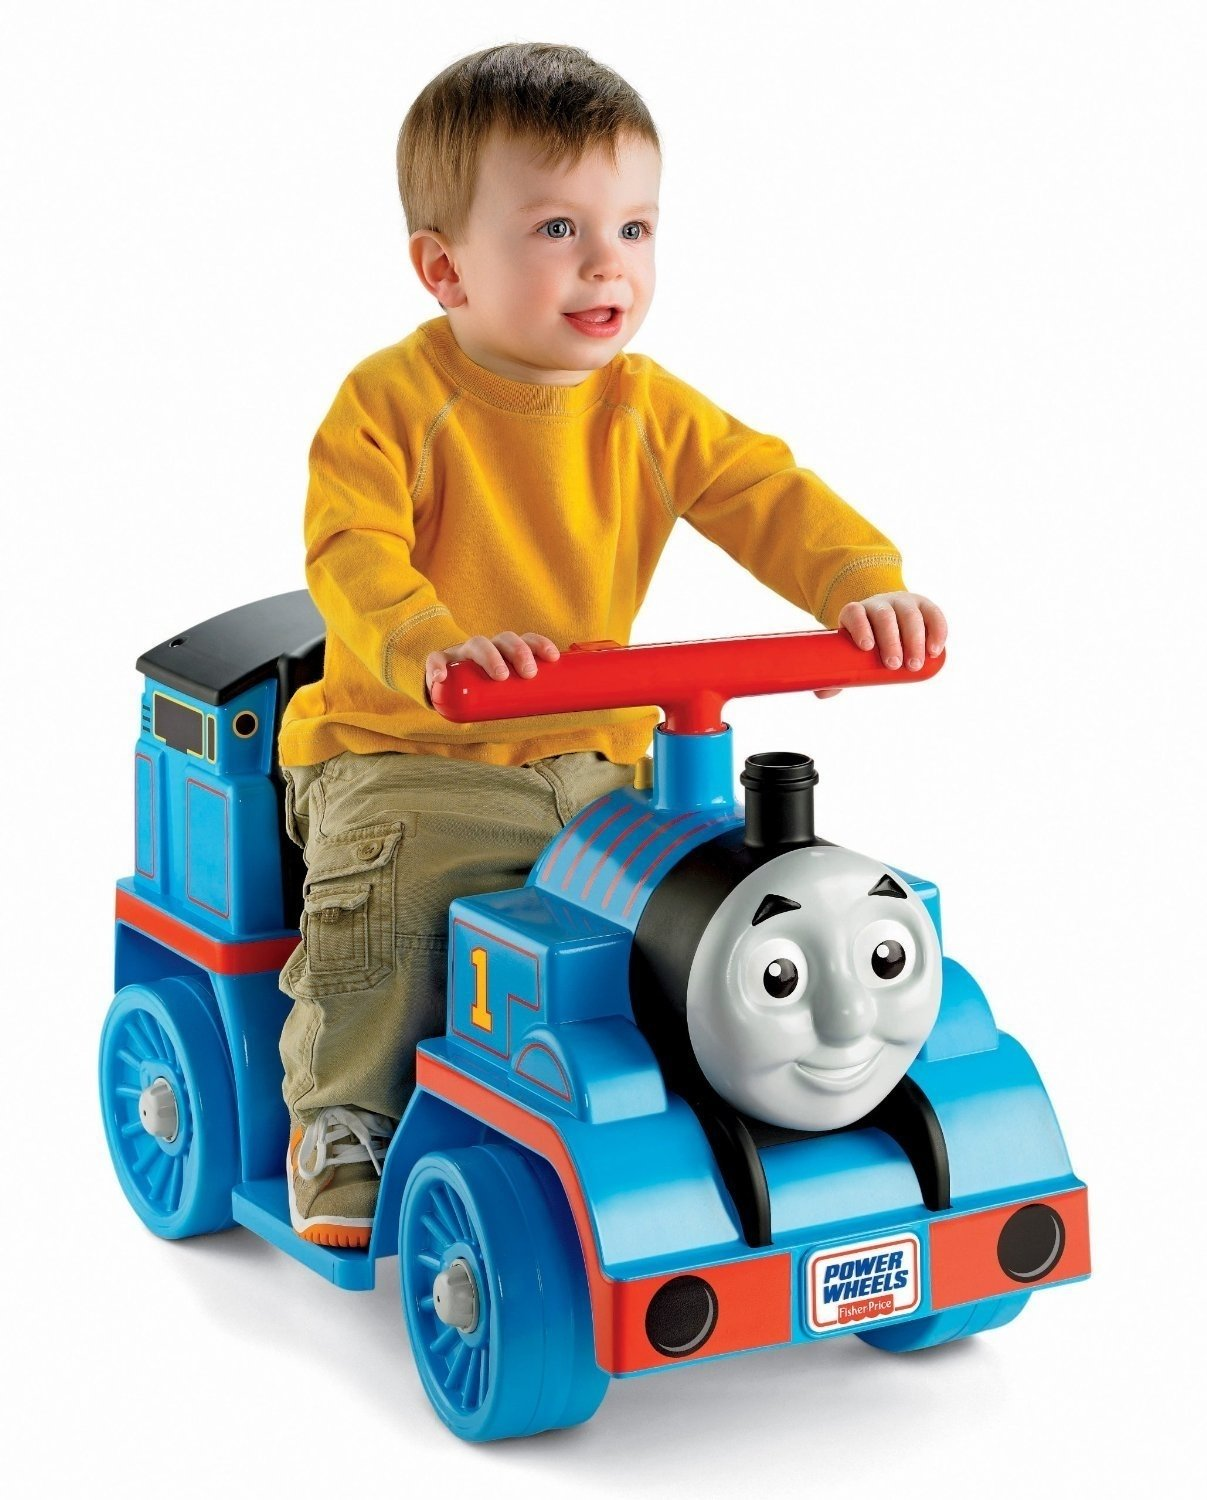 10 Amazing 1 Year Old Boy Birthday Gift Ideas Power Wheels Thomas The Train Vehicle Only